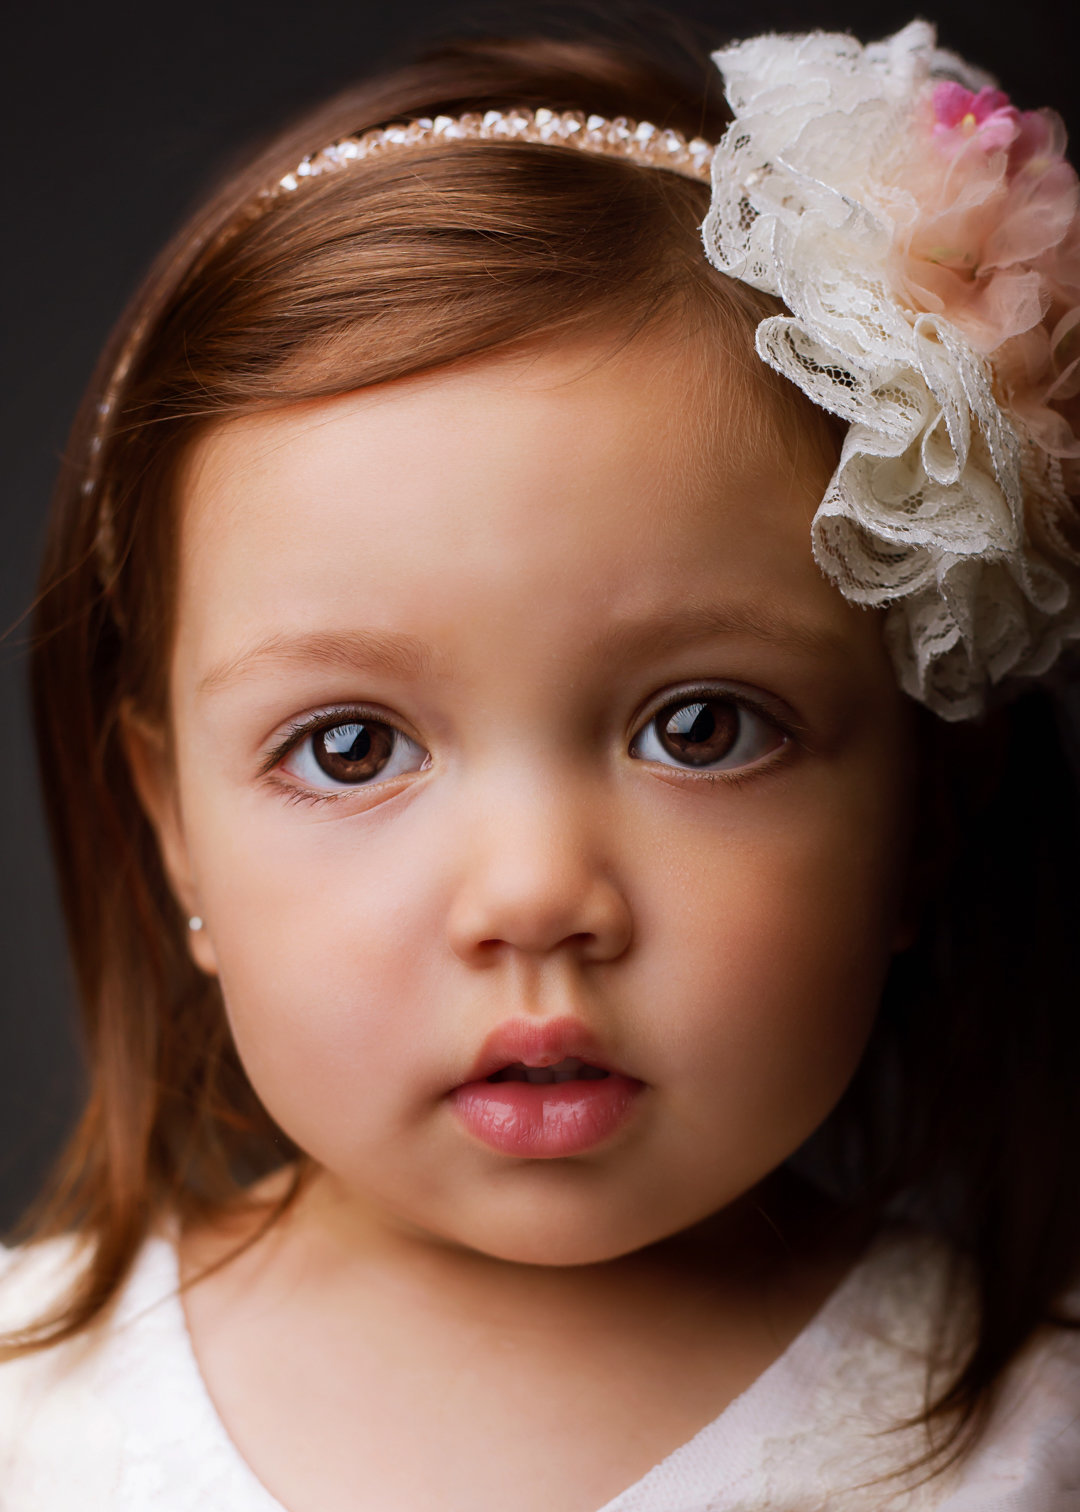 Girl-Toddler-Headshot-Fine Art-Dallas.jpg